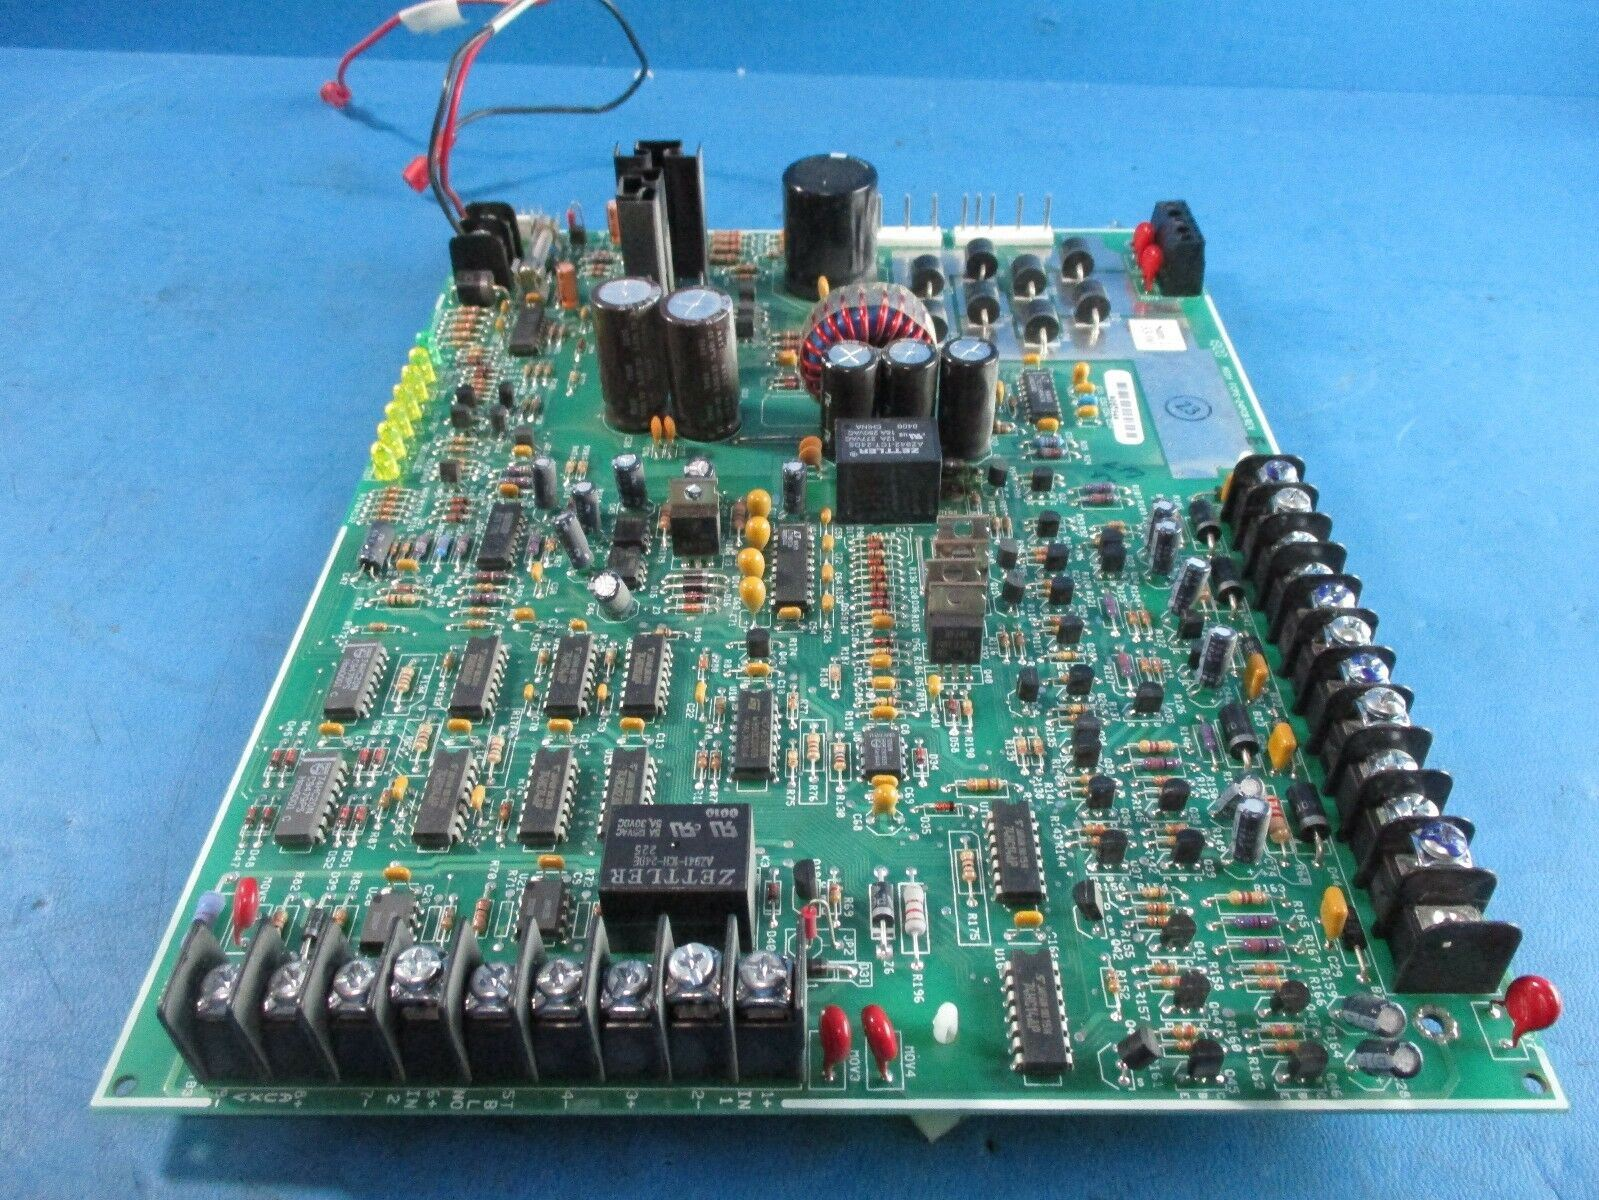 Details about Fire-Lite FCPS-24PCB RevE Fire Alarm Power Supply Circuit  Board - USED